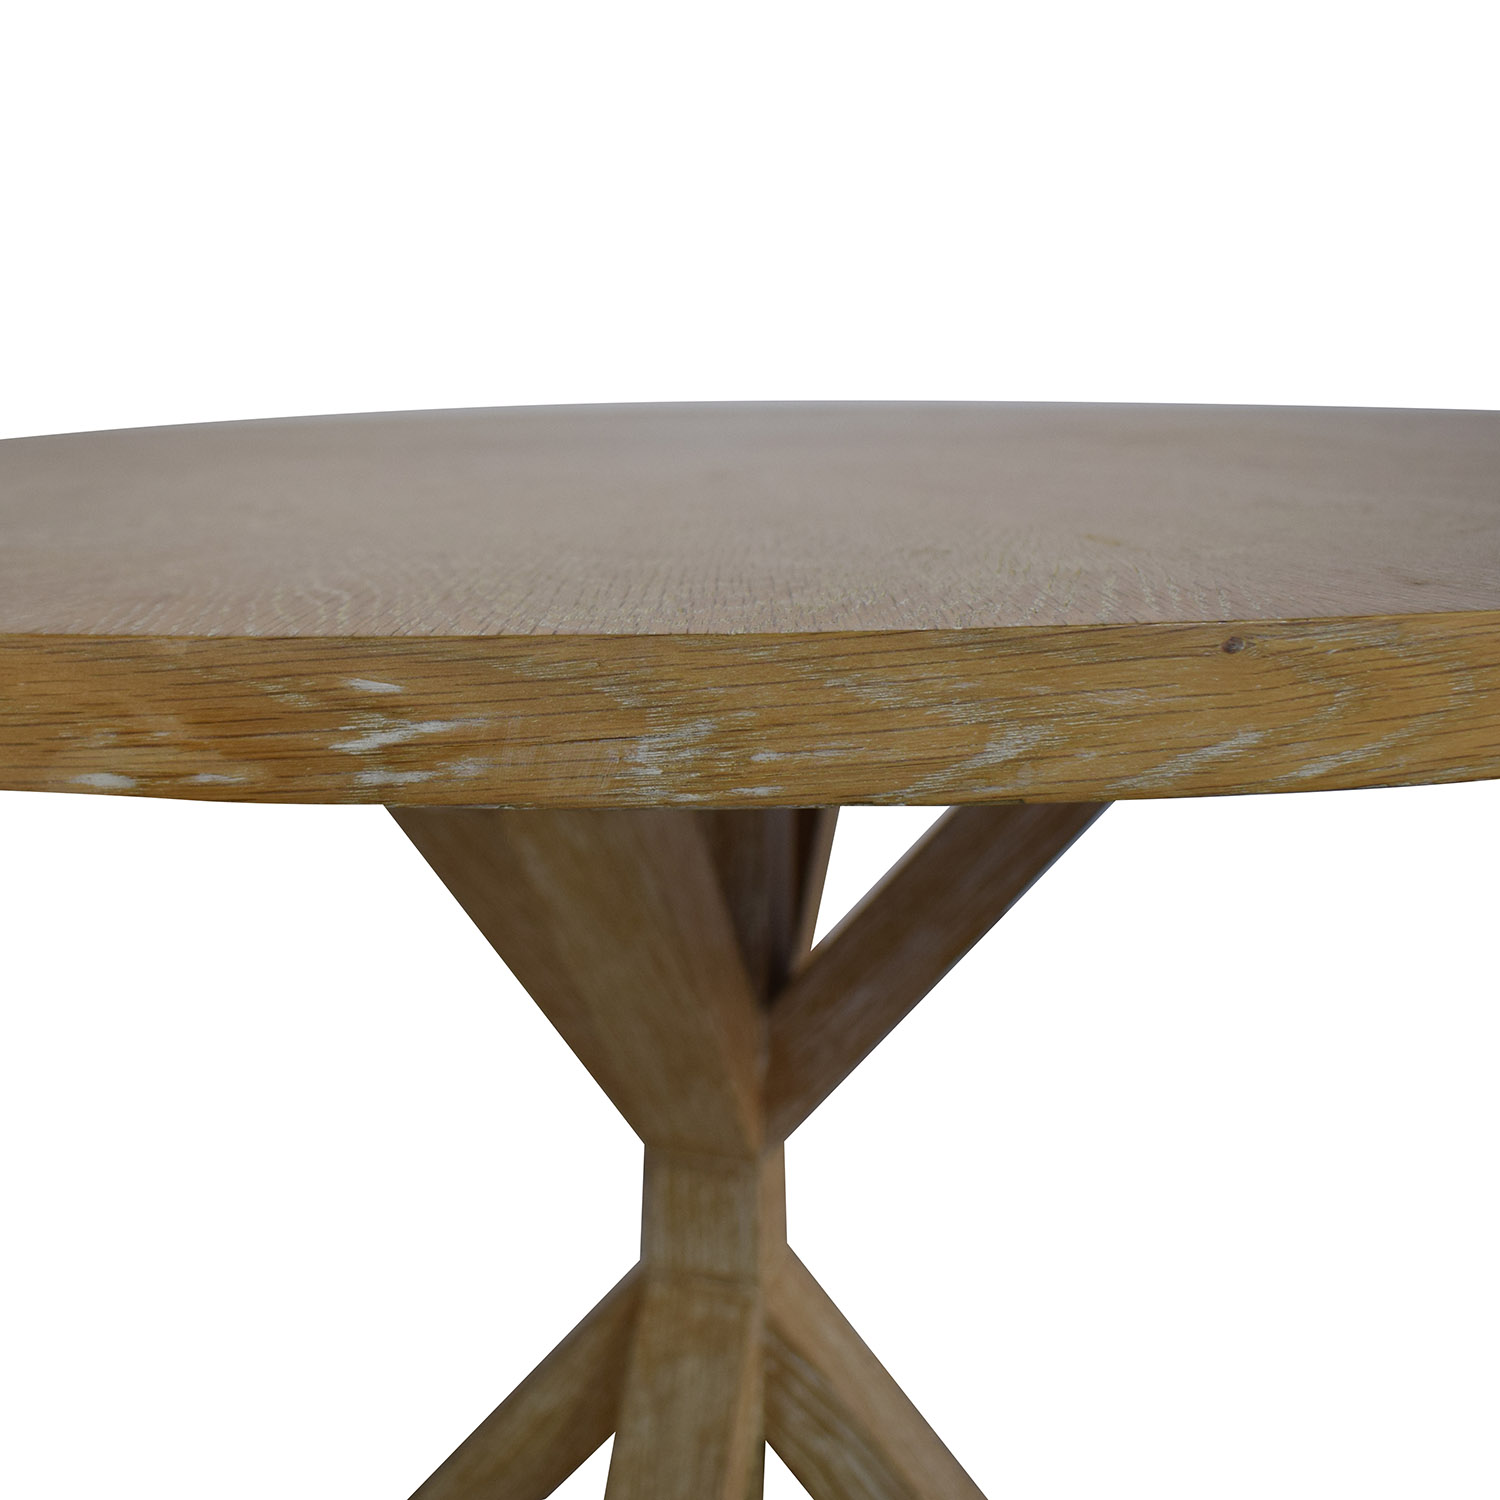 Birch Lane Birch Lane Peralta Dining Table tan